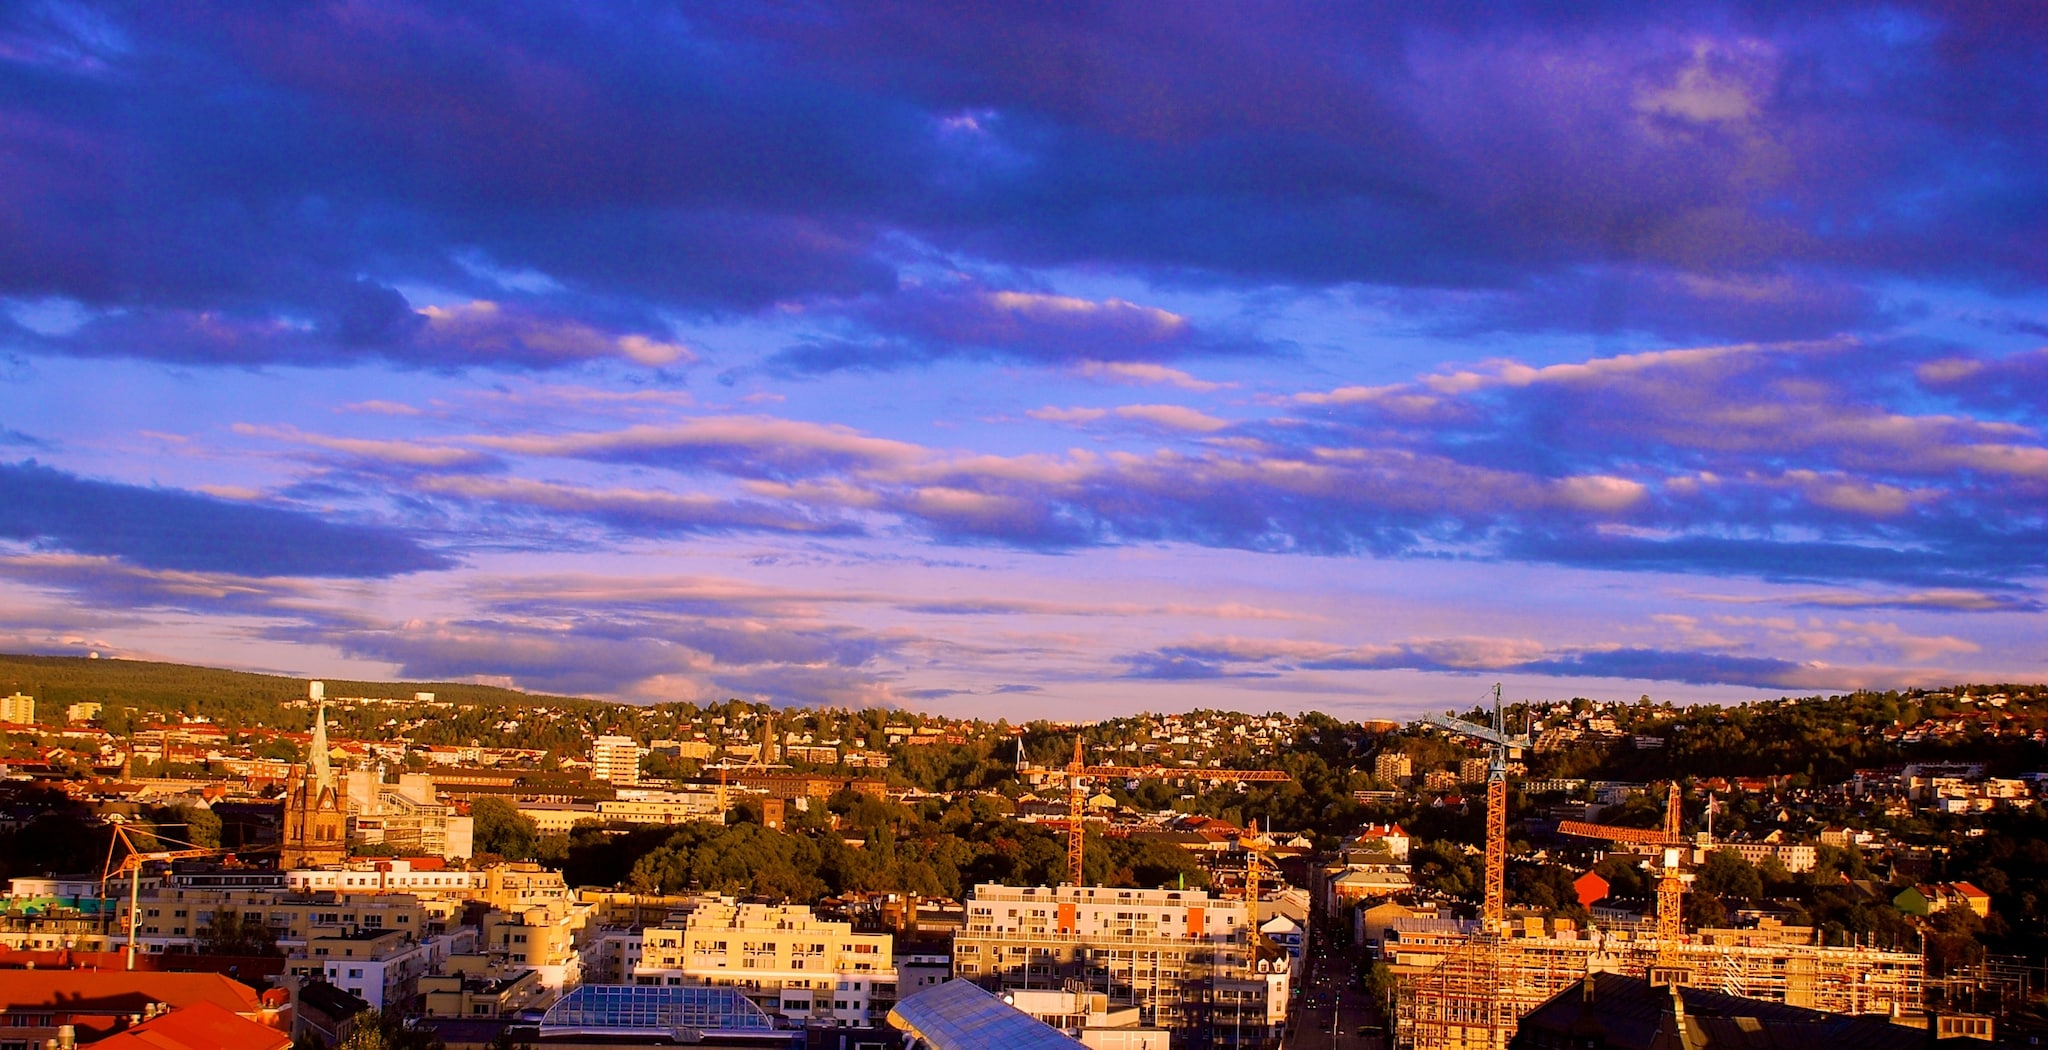 Oslo has been the capital of Norway since 1814 and occupies 454 sq km, 242 of which are forests.